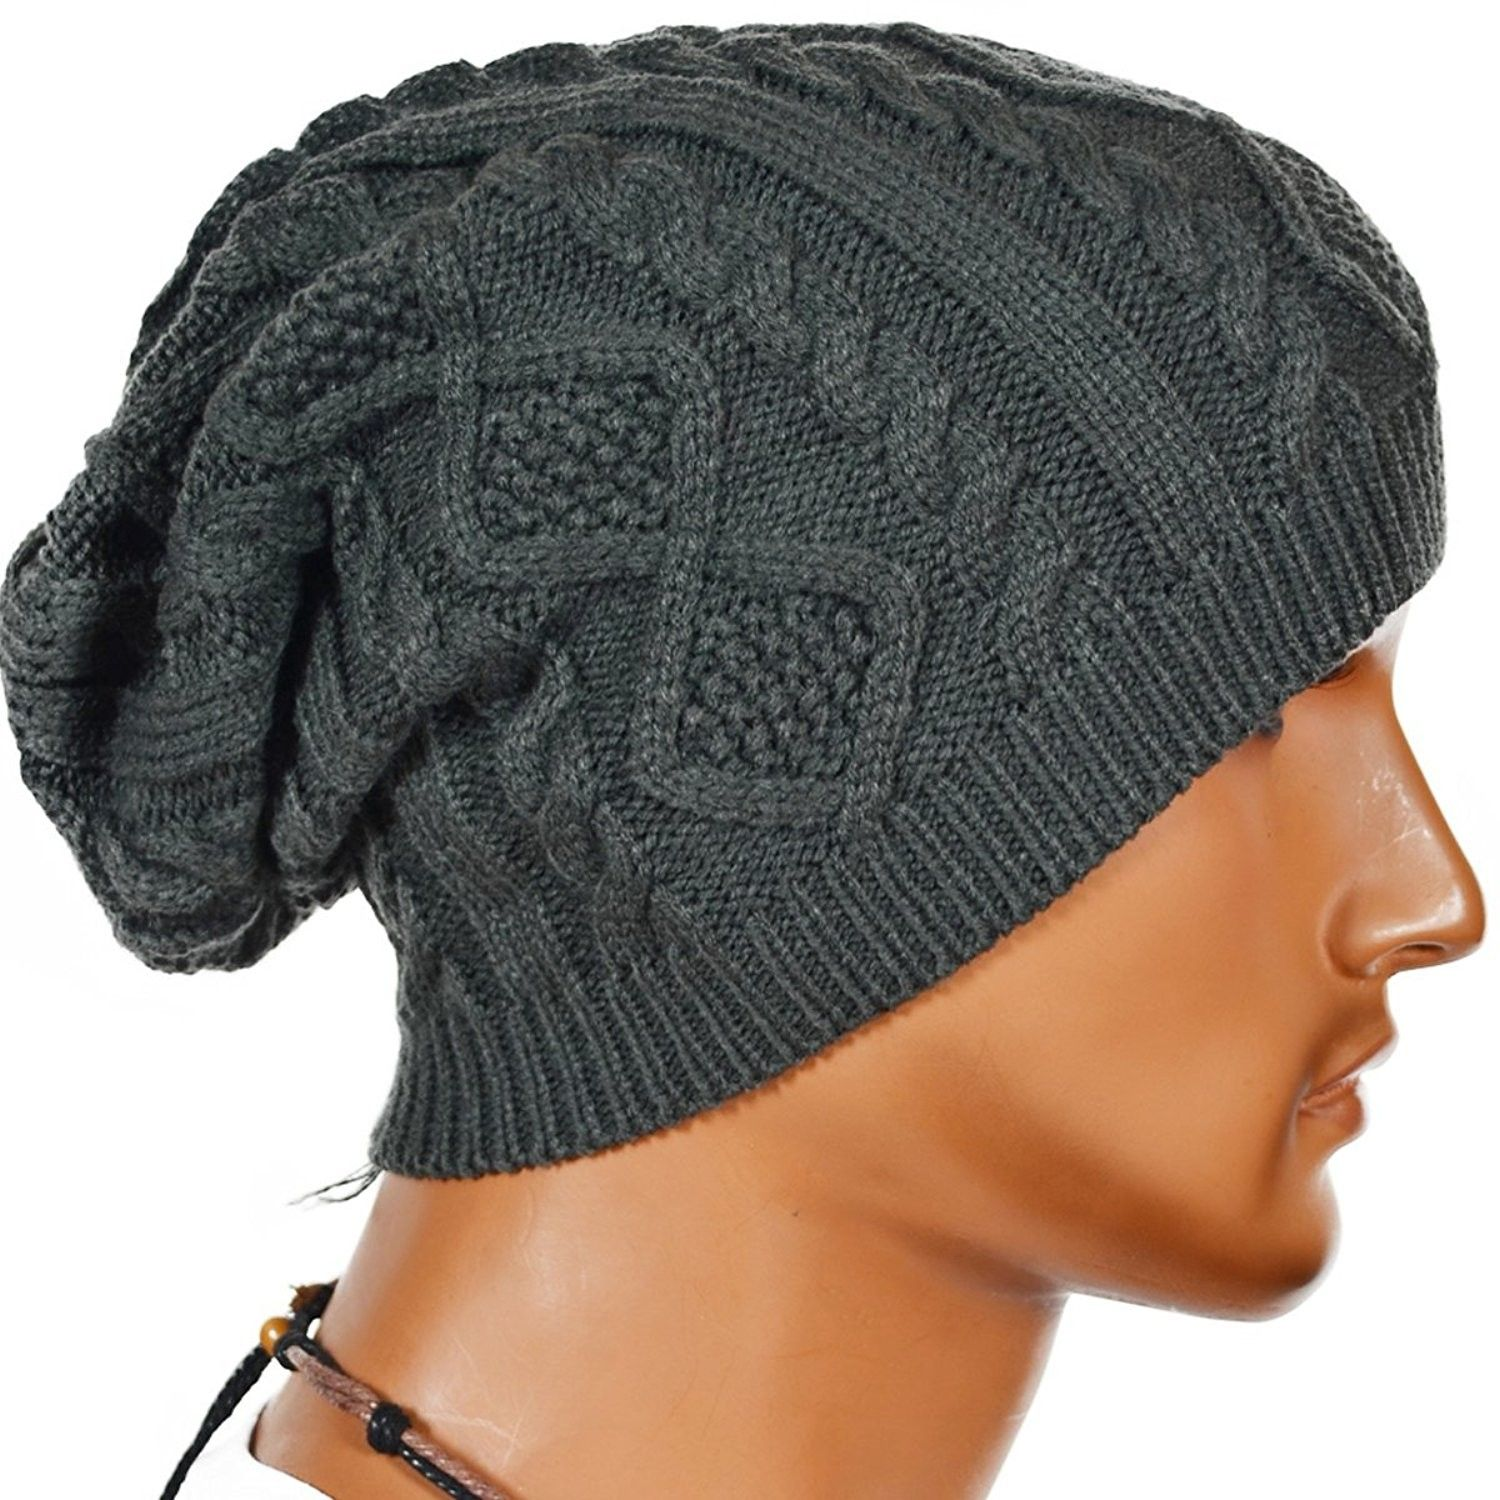 Everything Black 9 Skull Cap Beanie That Will Fit Your Head Perfect